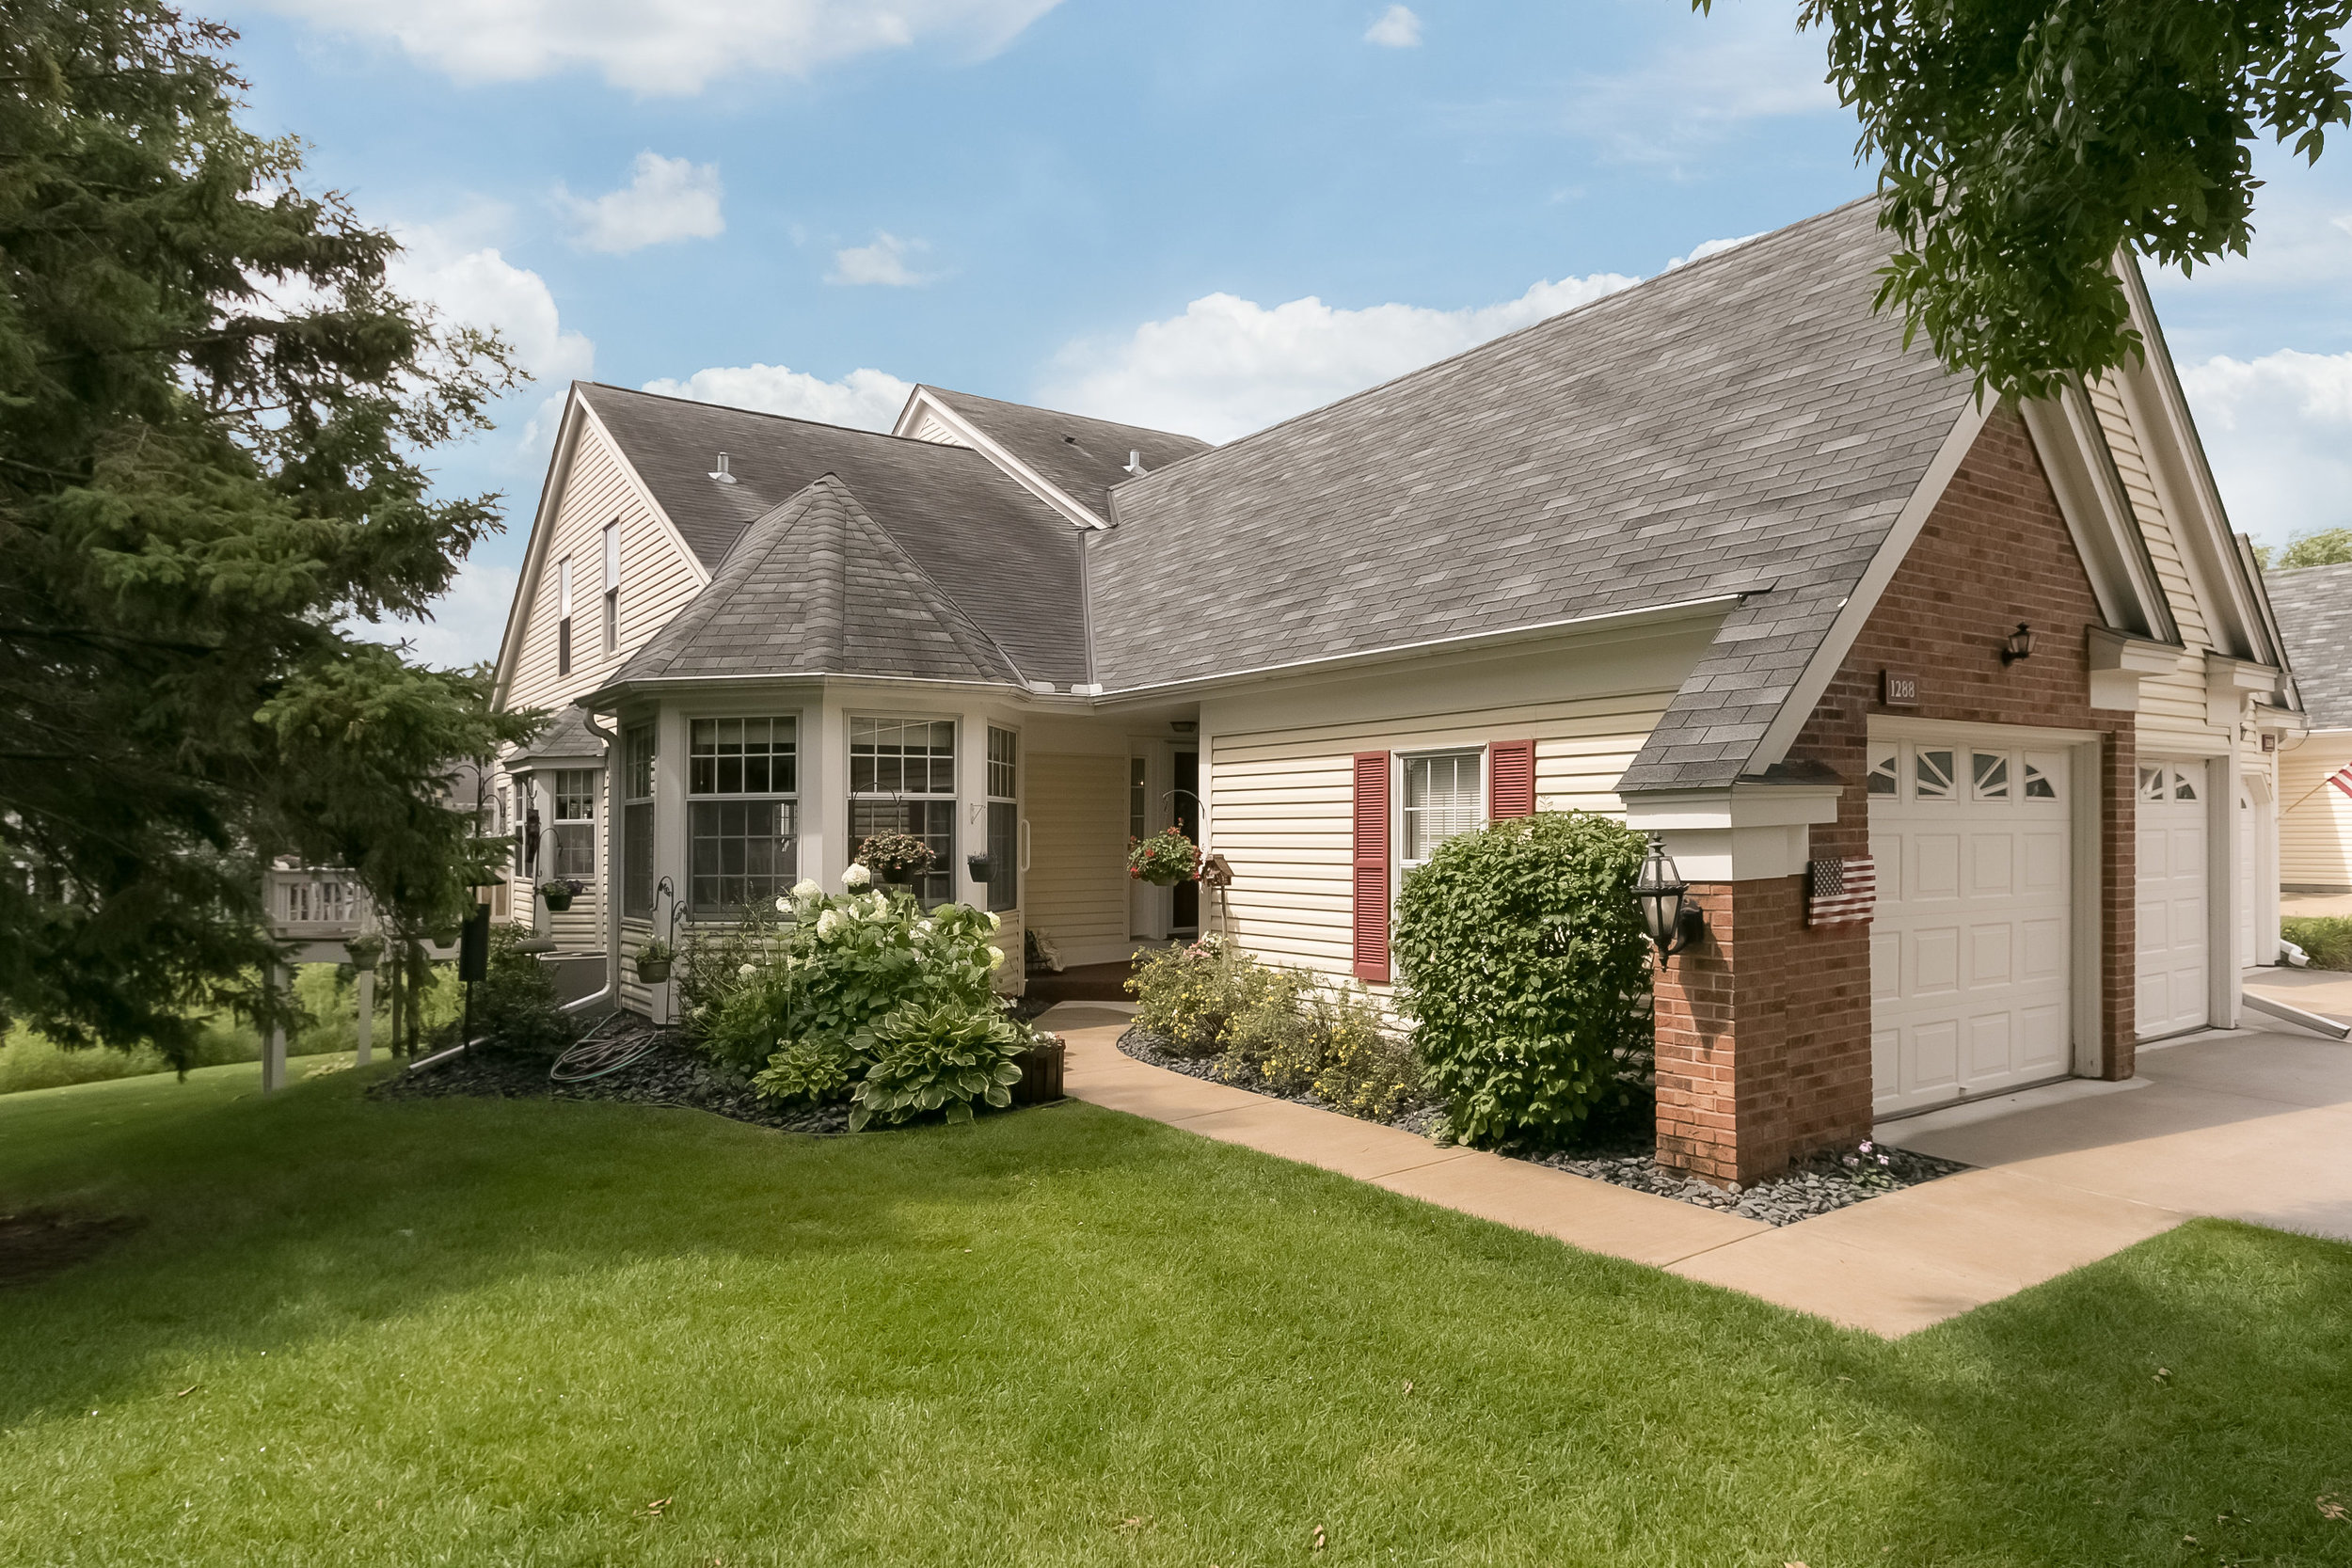 Townhome in White Bear